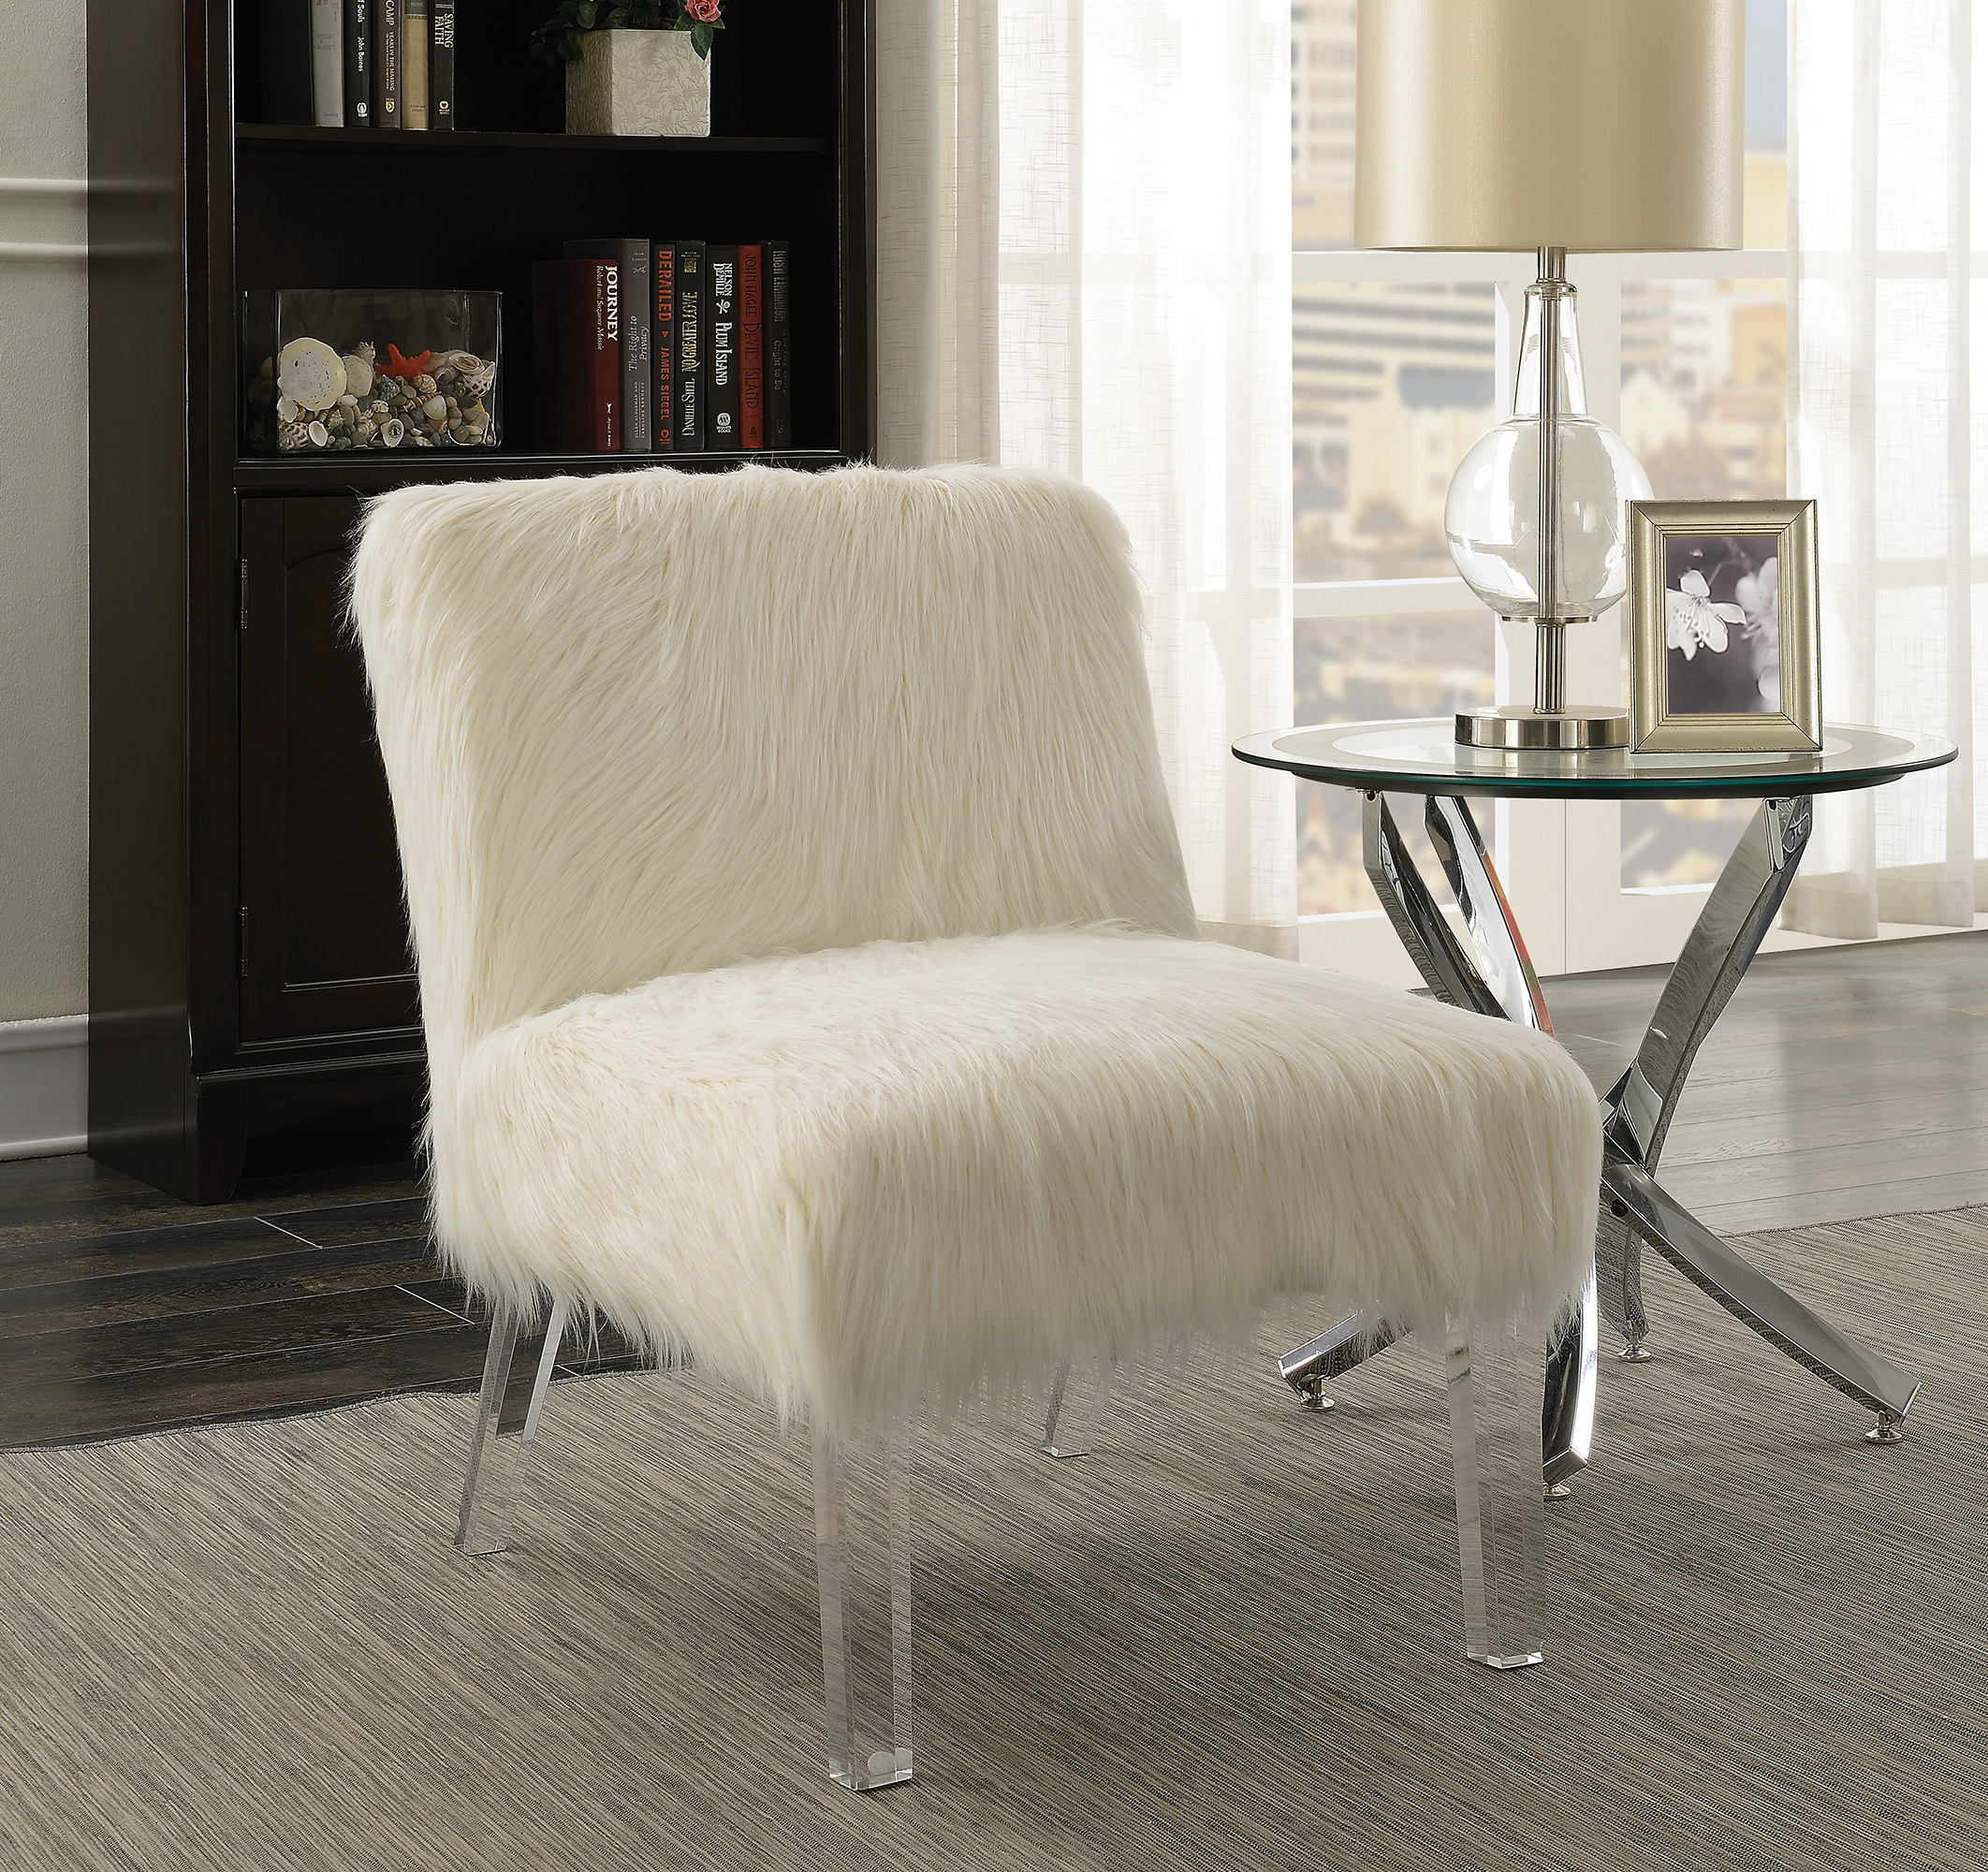 Accent Seating Faux Sheepskin Chair With Acrylic Legs-UMF904